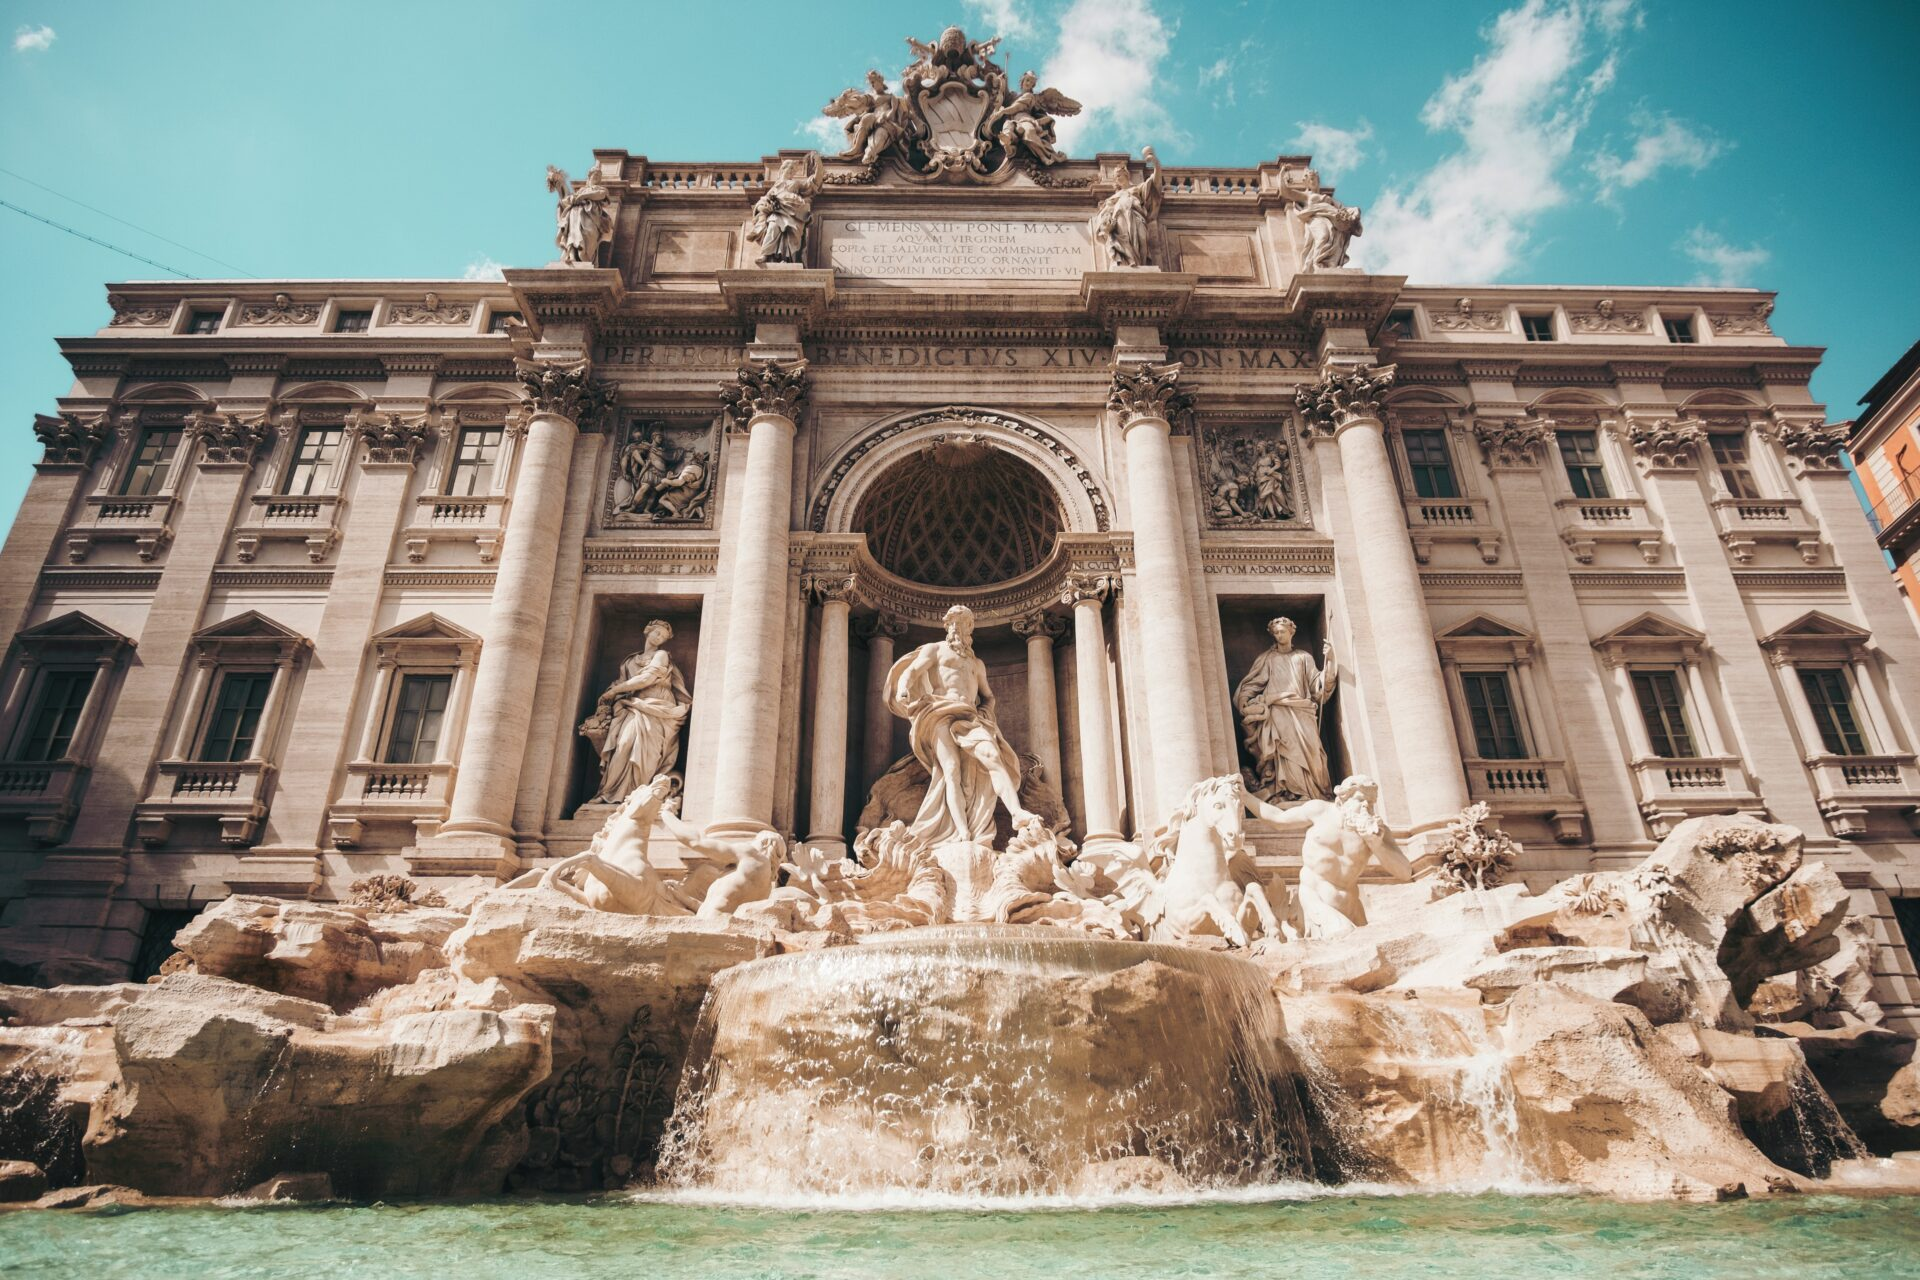 Top 10 Amazing Places You Have to See in Rome 4